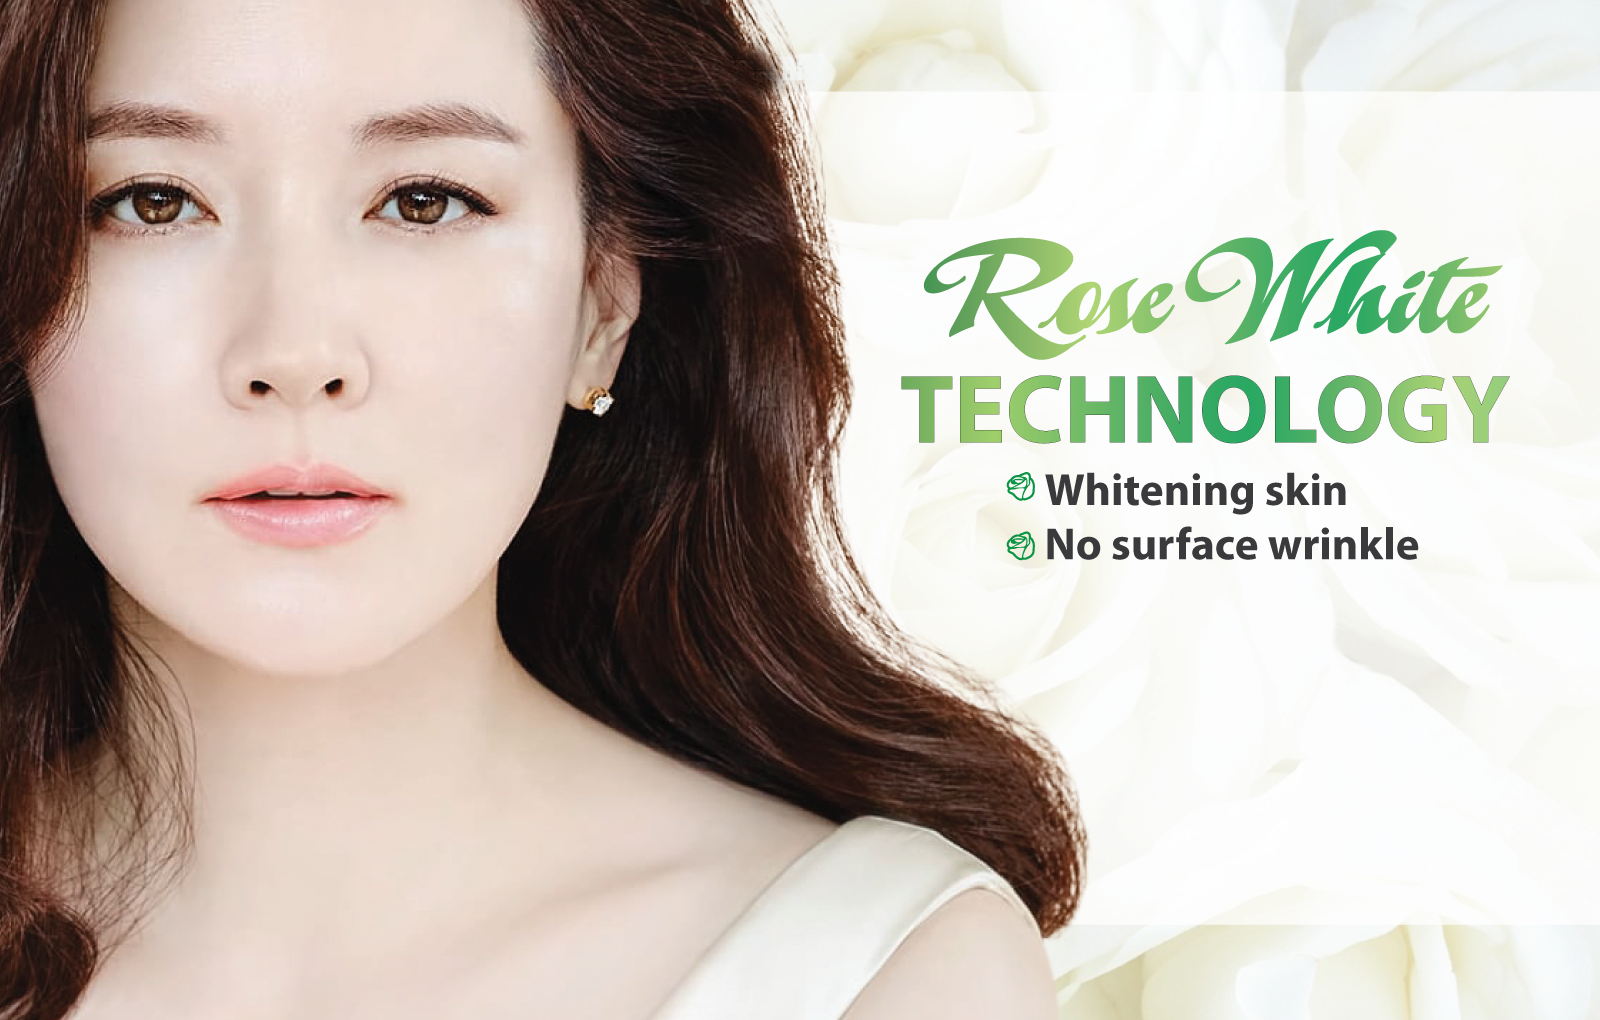 SKIN WHITENING AND REJUVENATING BY ROSE WHITE METHOD